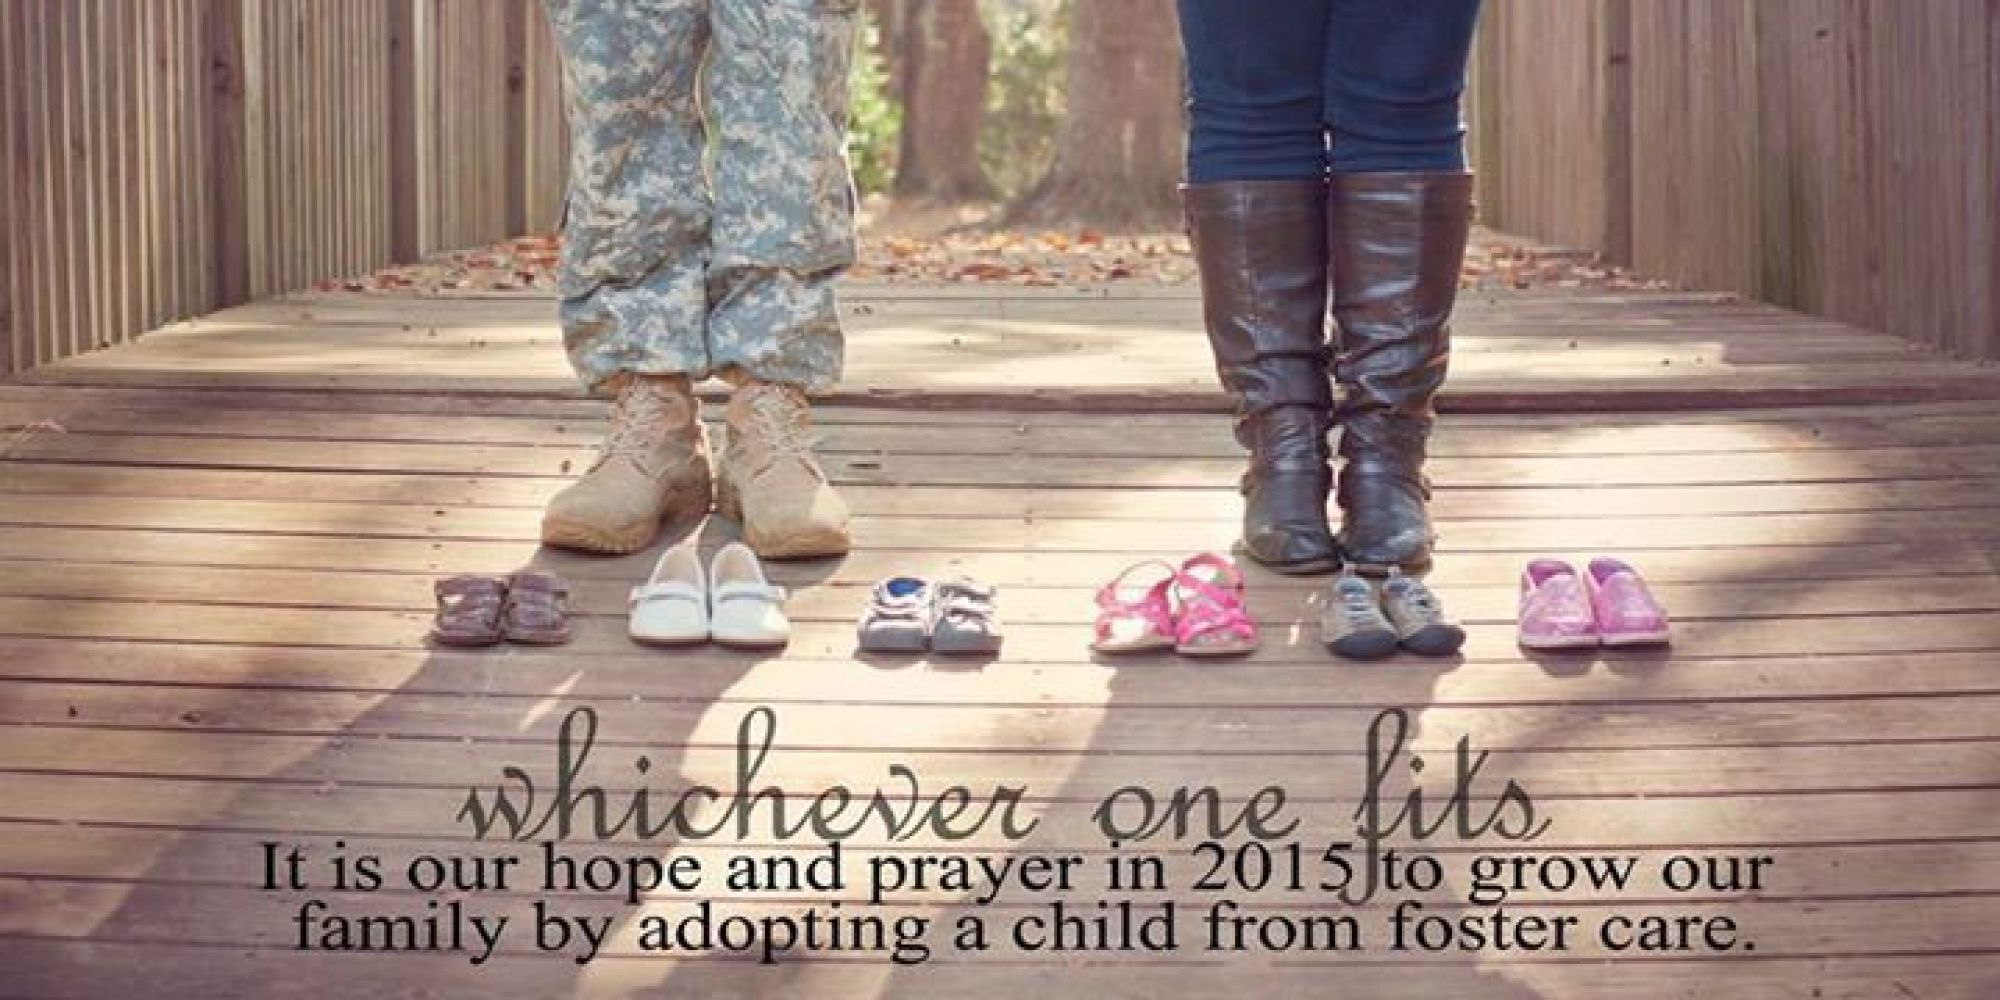 Hopeful Parentstobe Share Inspiring Card About Their Plan To Adopt A  Foster Child  Huffpost